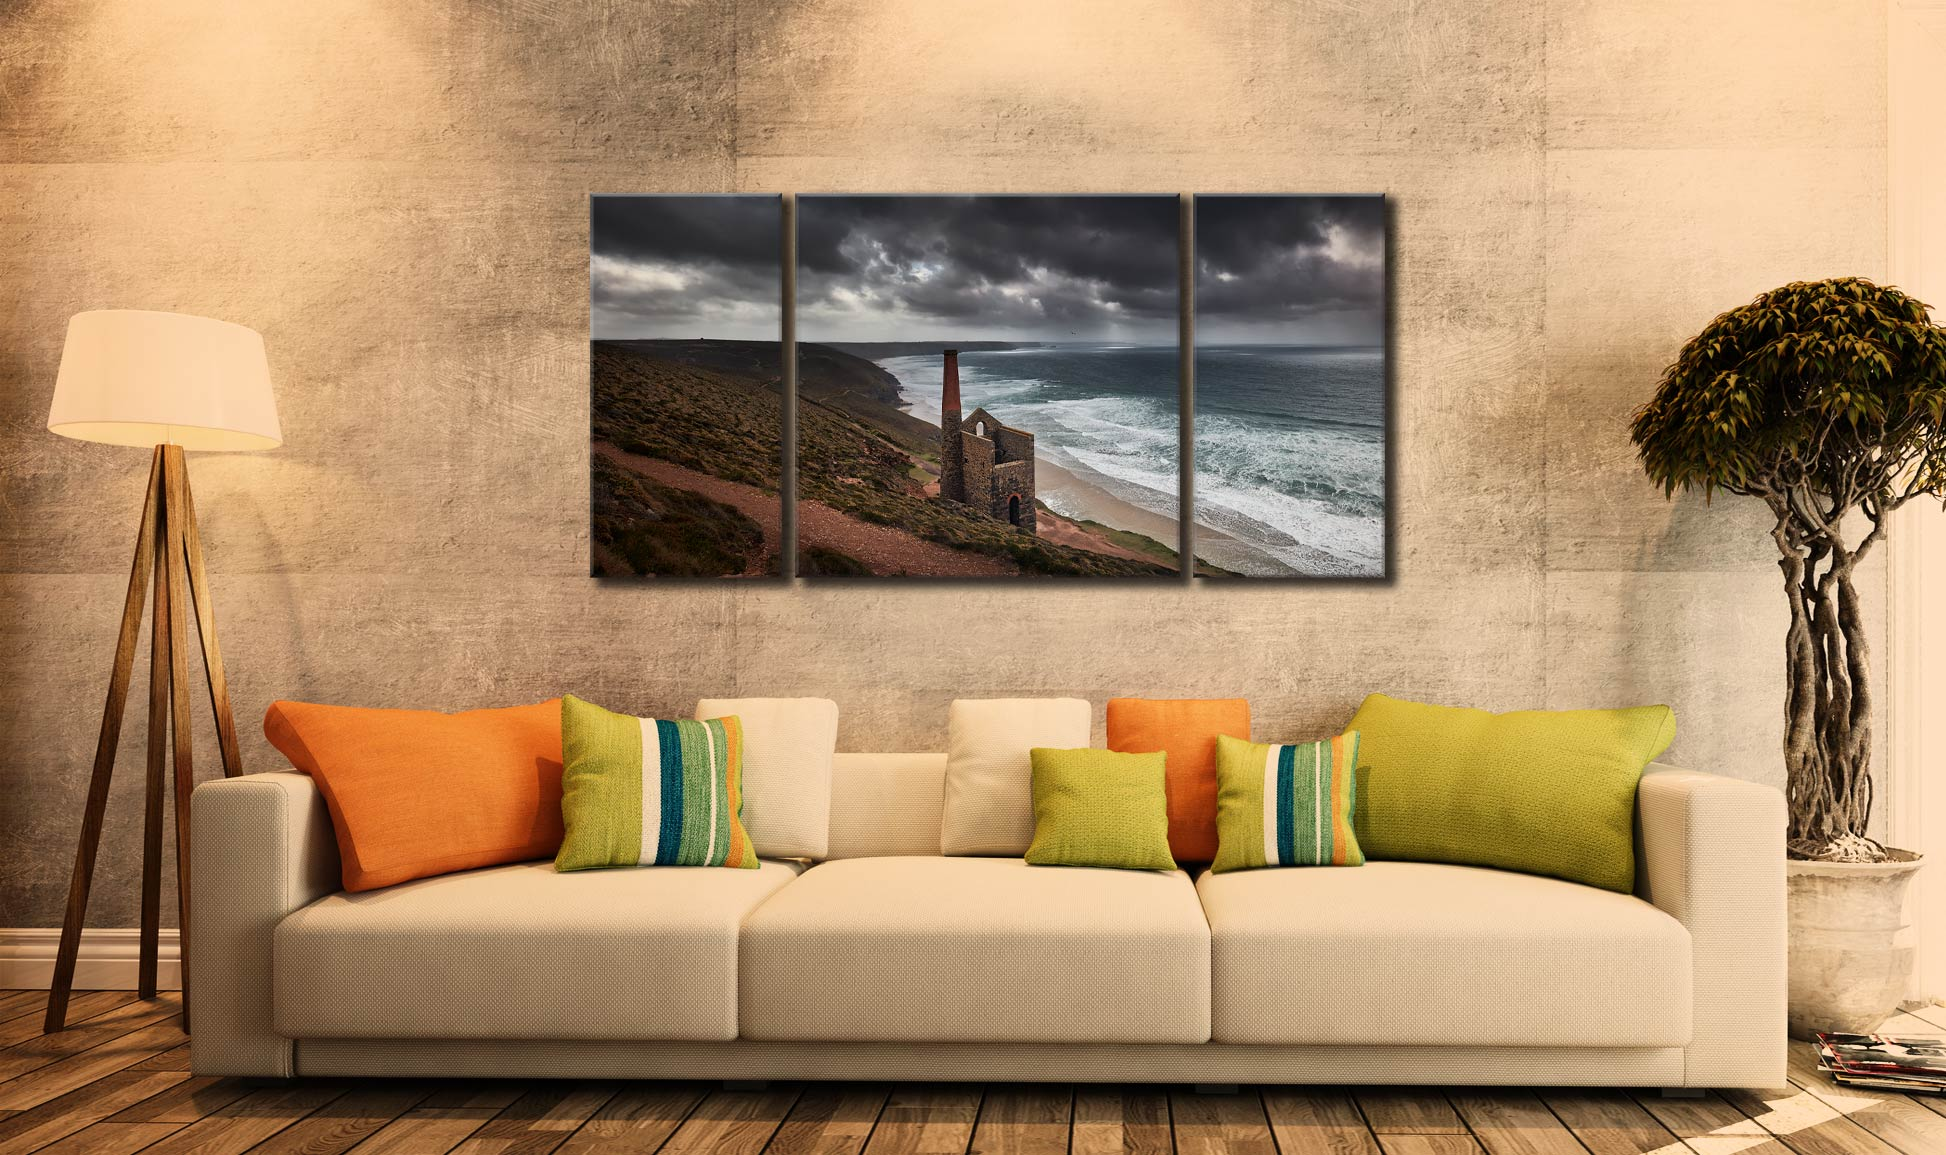 Wheal Coates Mine Ruin - 3 Panel Wide Centre Canvas on Wall